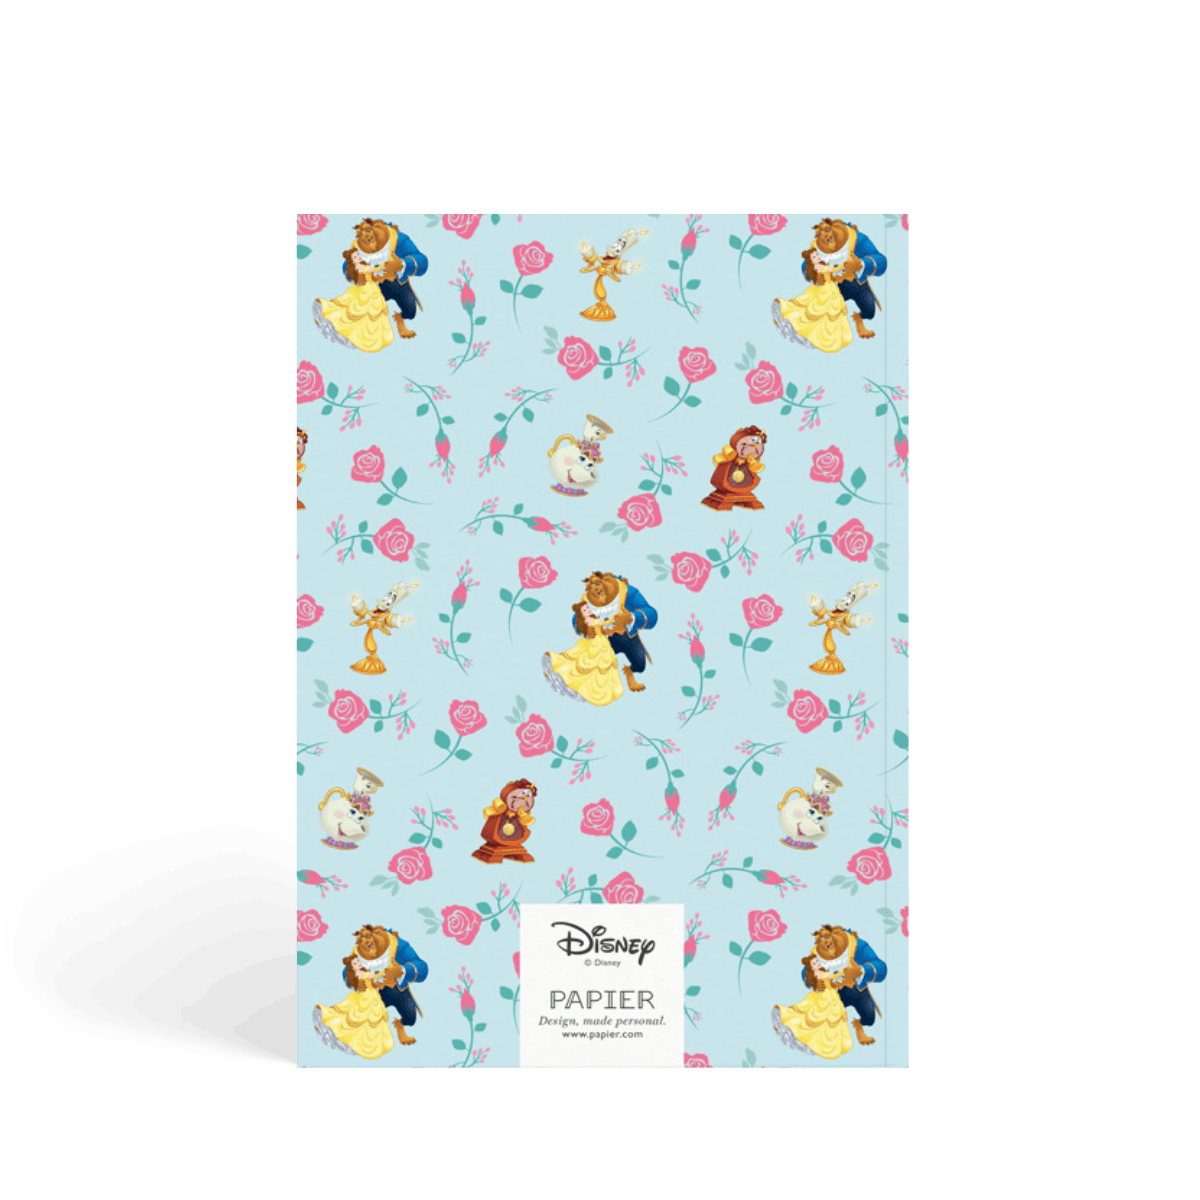 Https%3a%2f%2fwww.papier.com%2fproduct image%2f55704%2f5%2fbeauty the beast 13378 back 1548948878.png?ixlib=rb 1.1